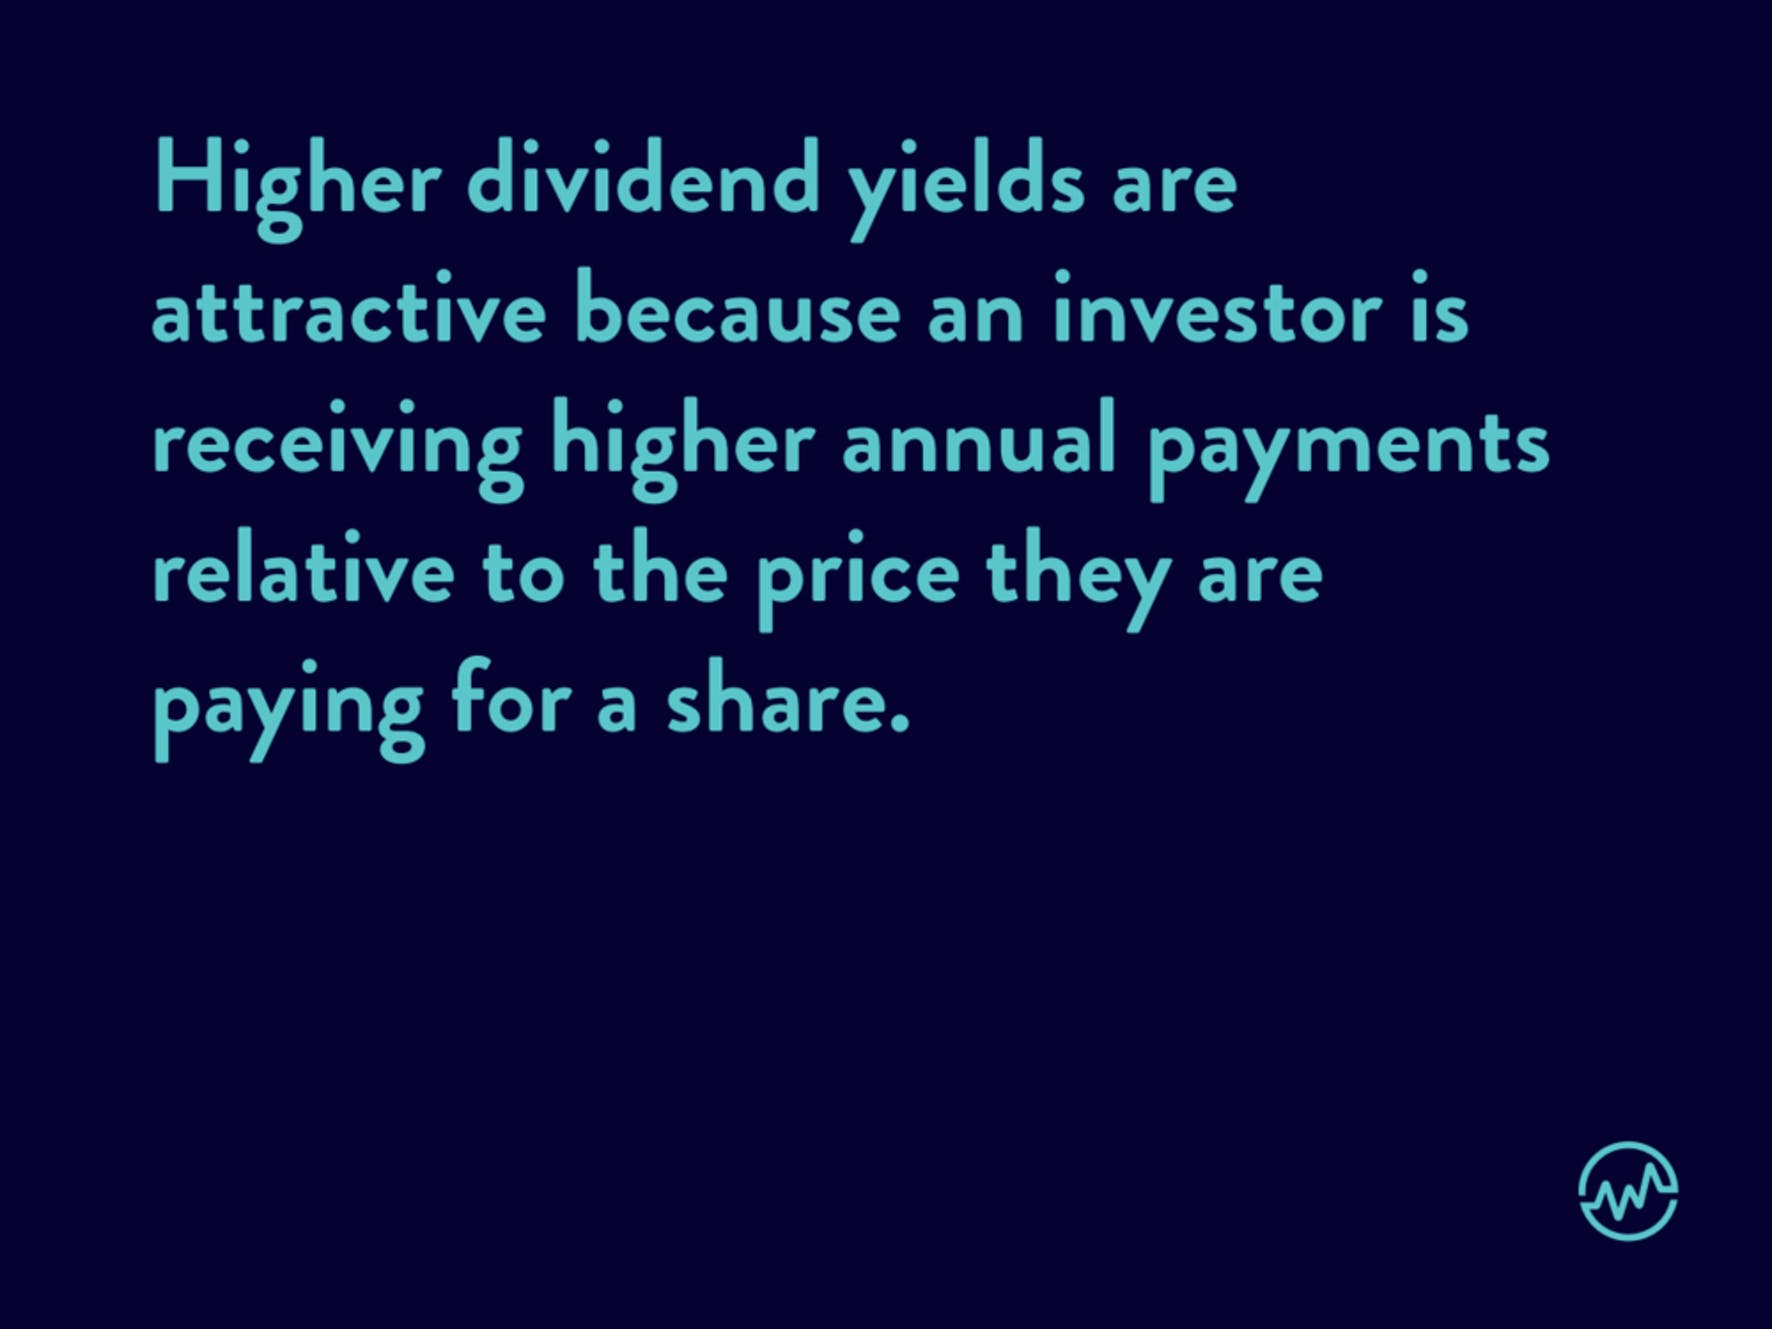 Understanding how to read a stock: Why higher dividend yields are attractive to investors